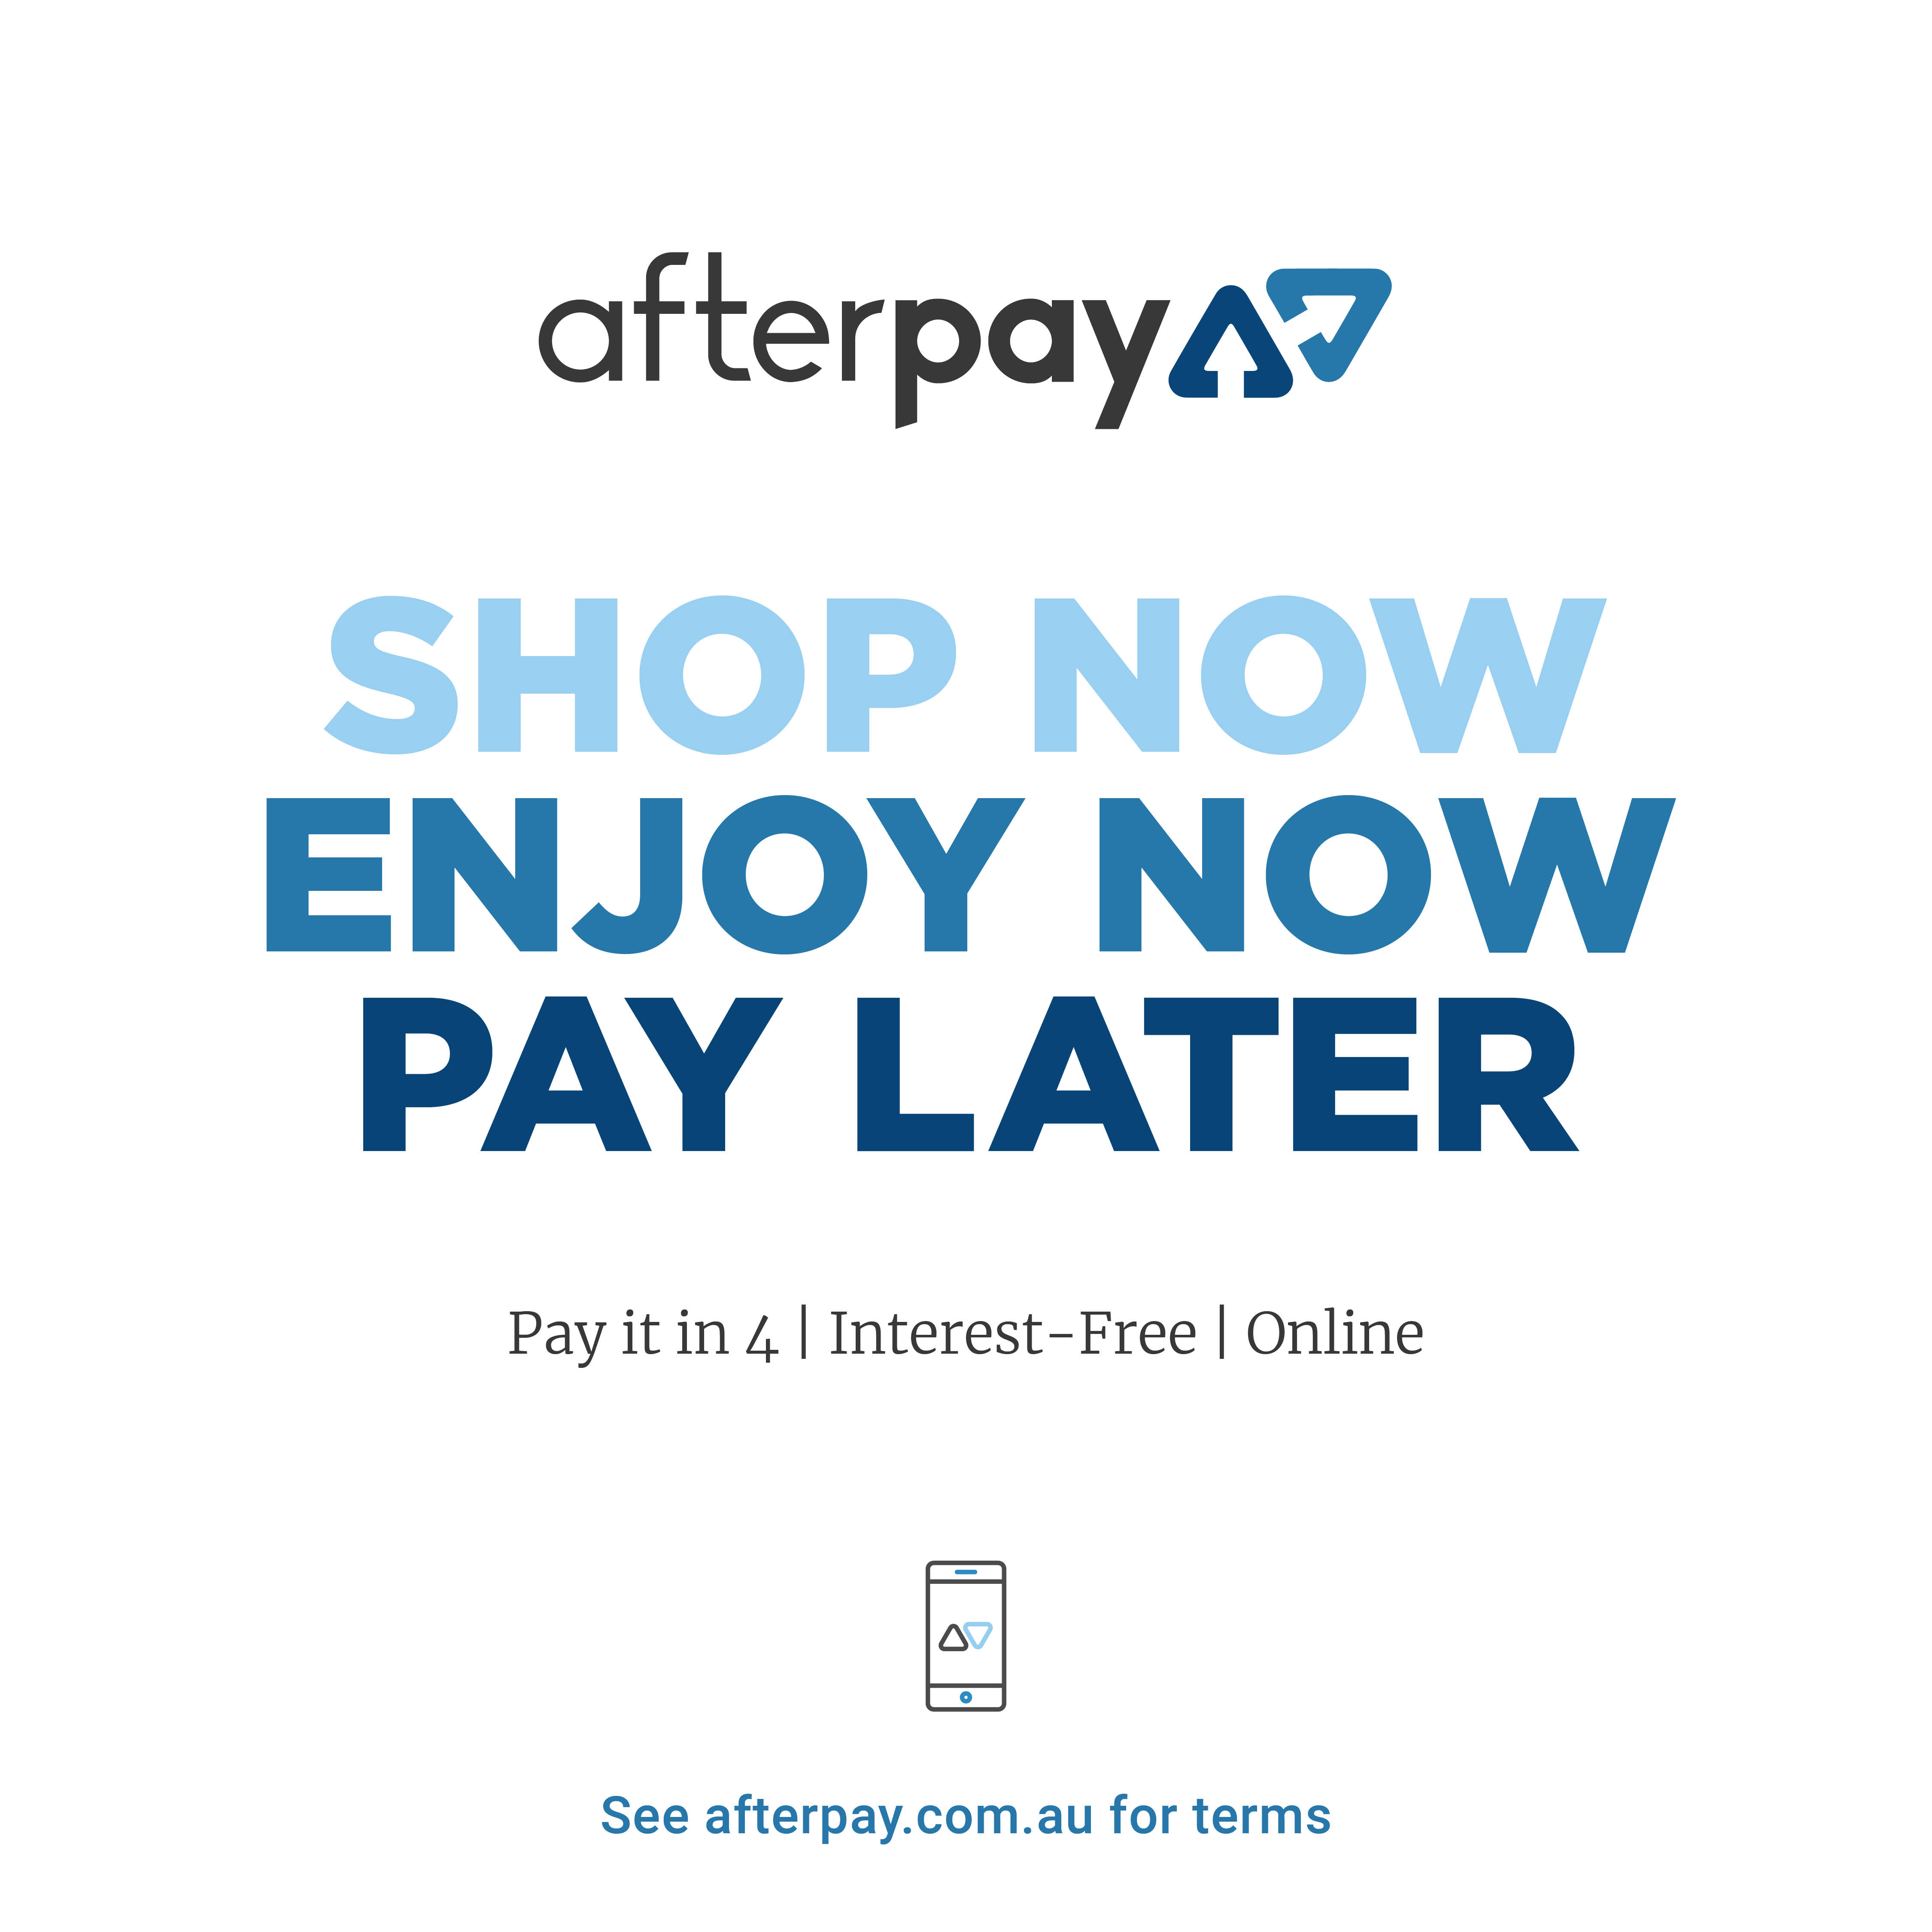 Pay it in 4 Interest Free Payments Online